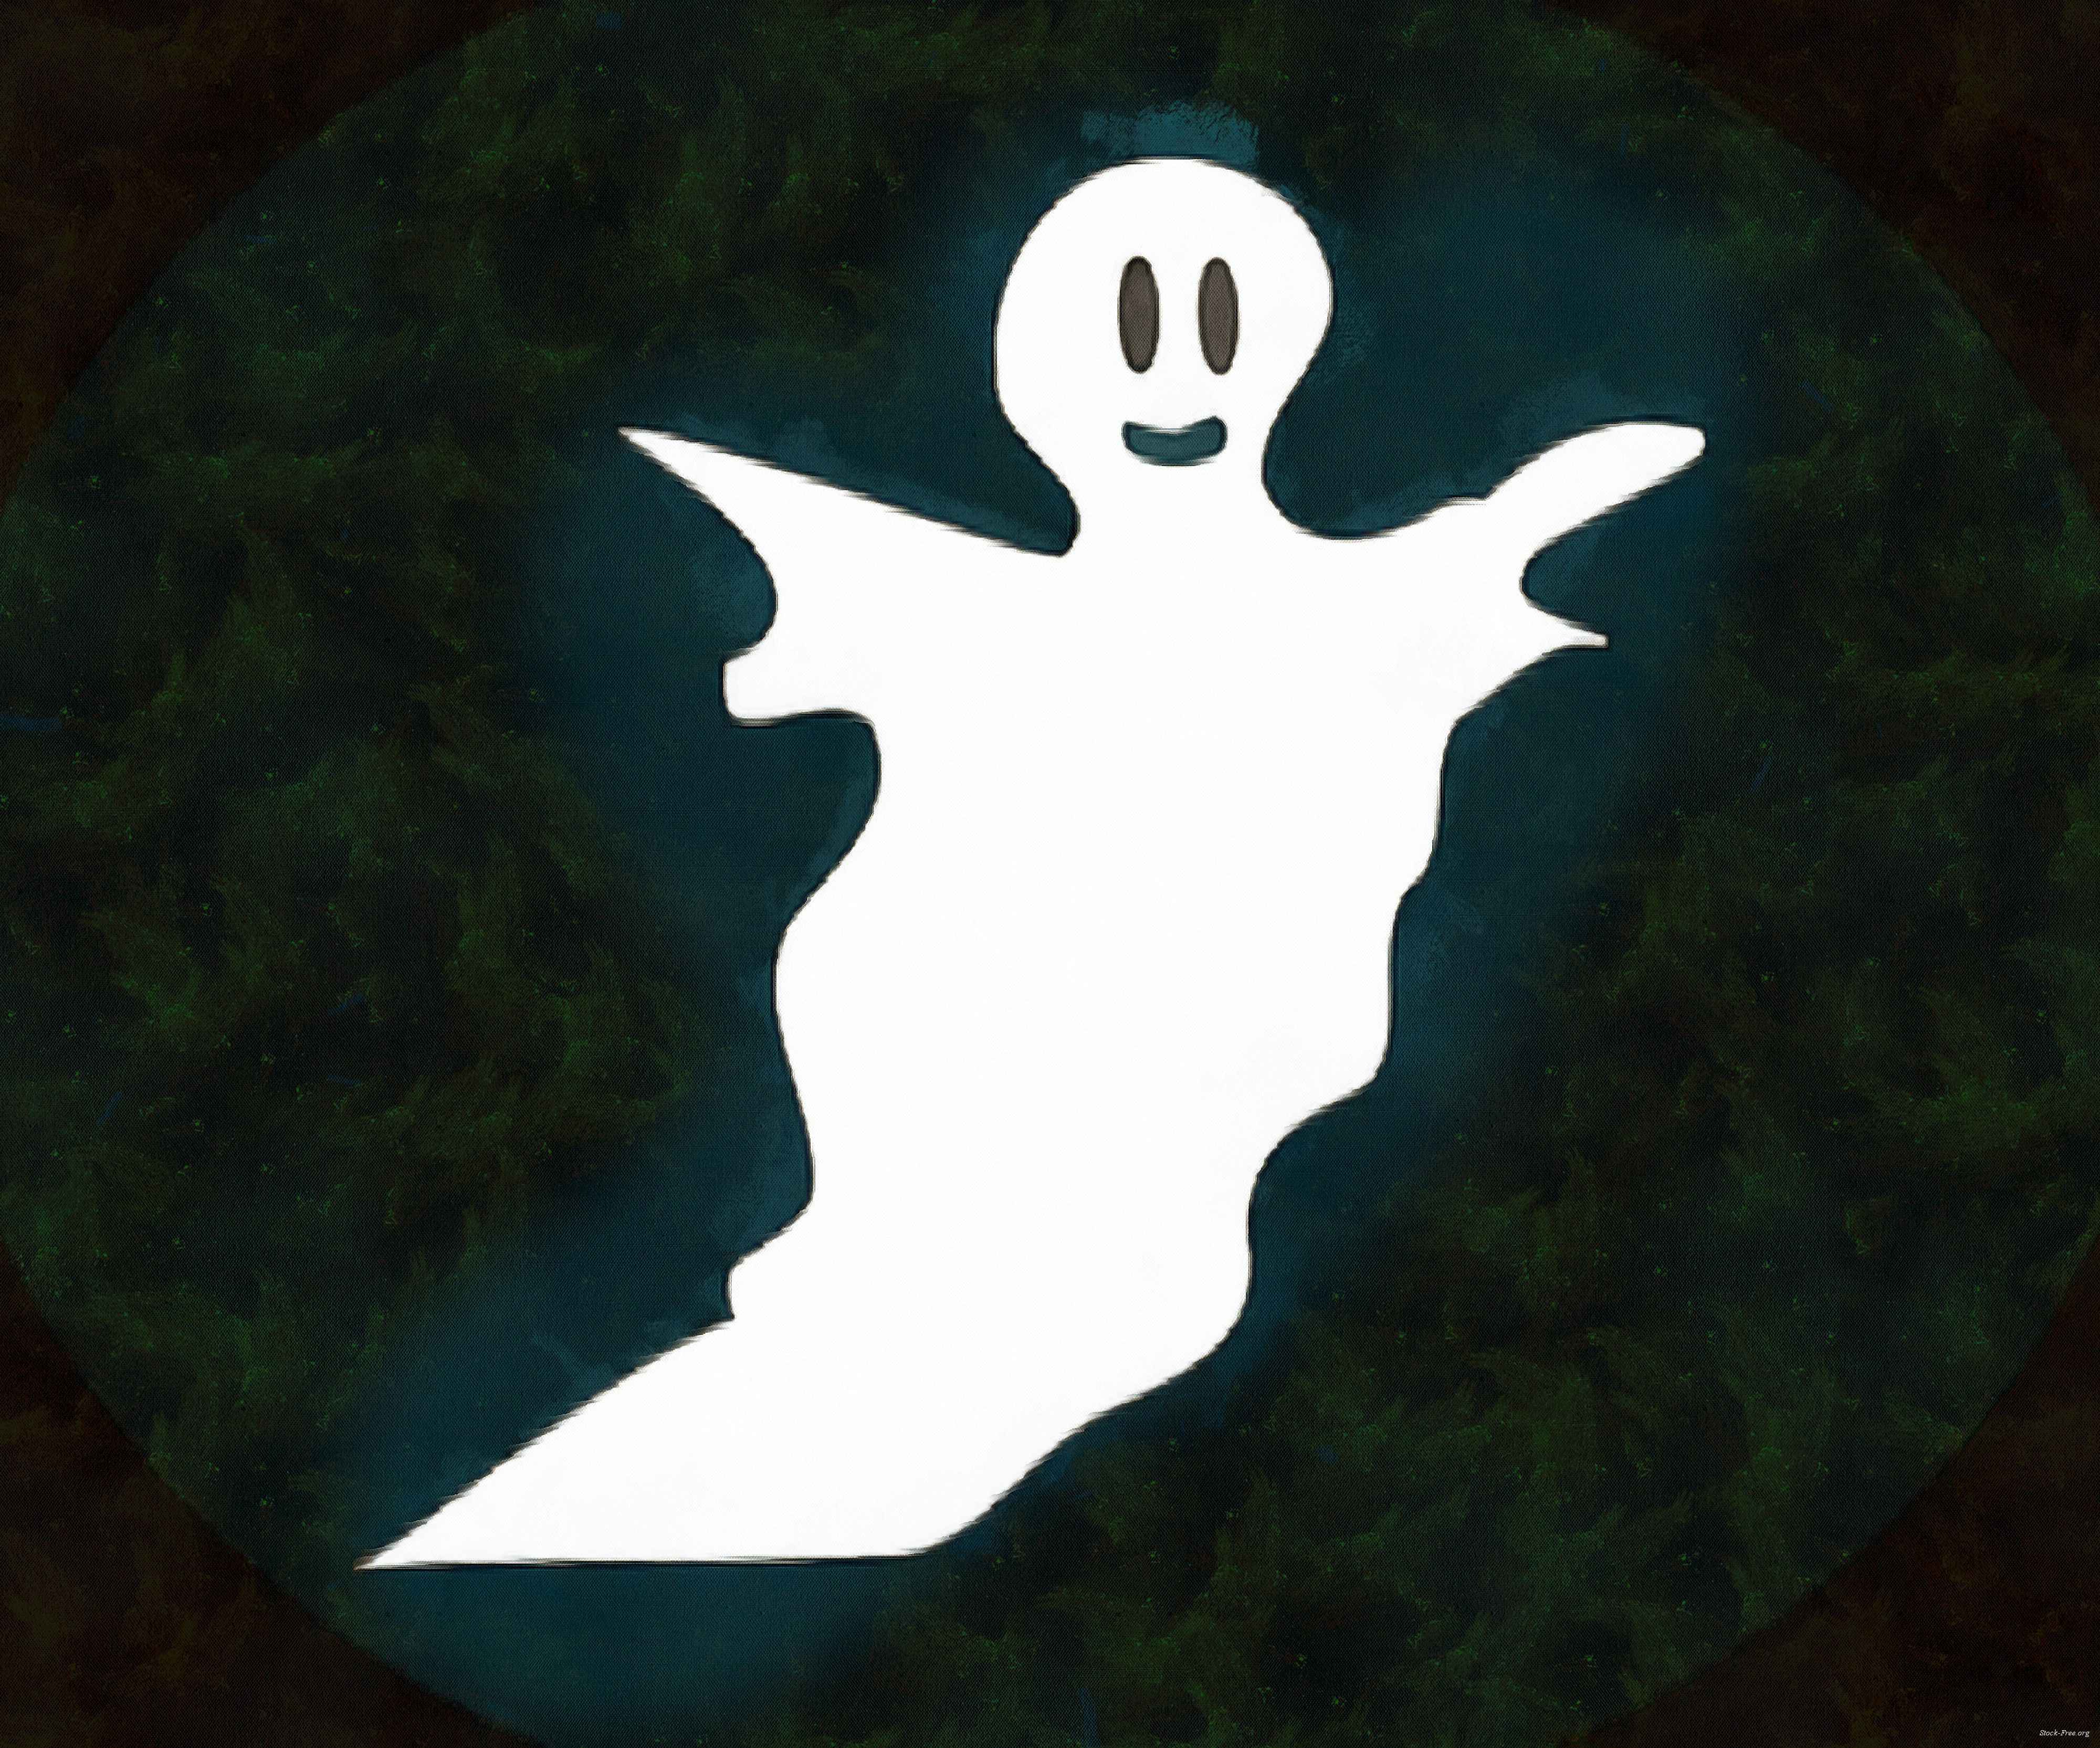 ghost, spirit, poltergeist, Casper the Friendly Ghost, magic, halloween, - stock free images, public domain, free images, download images for free, public domain photos, free stock image